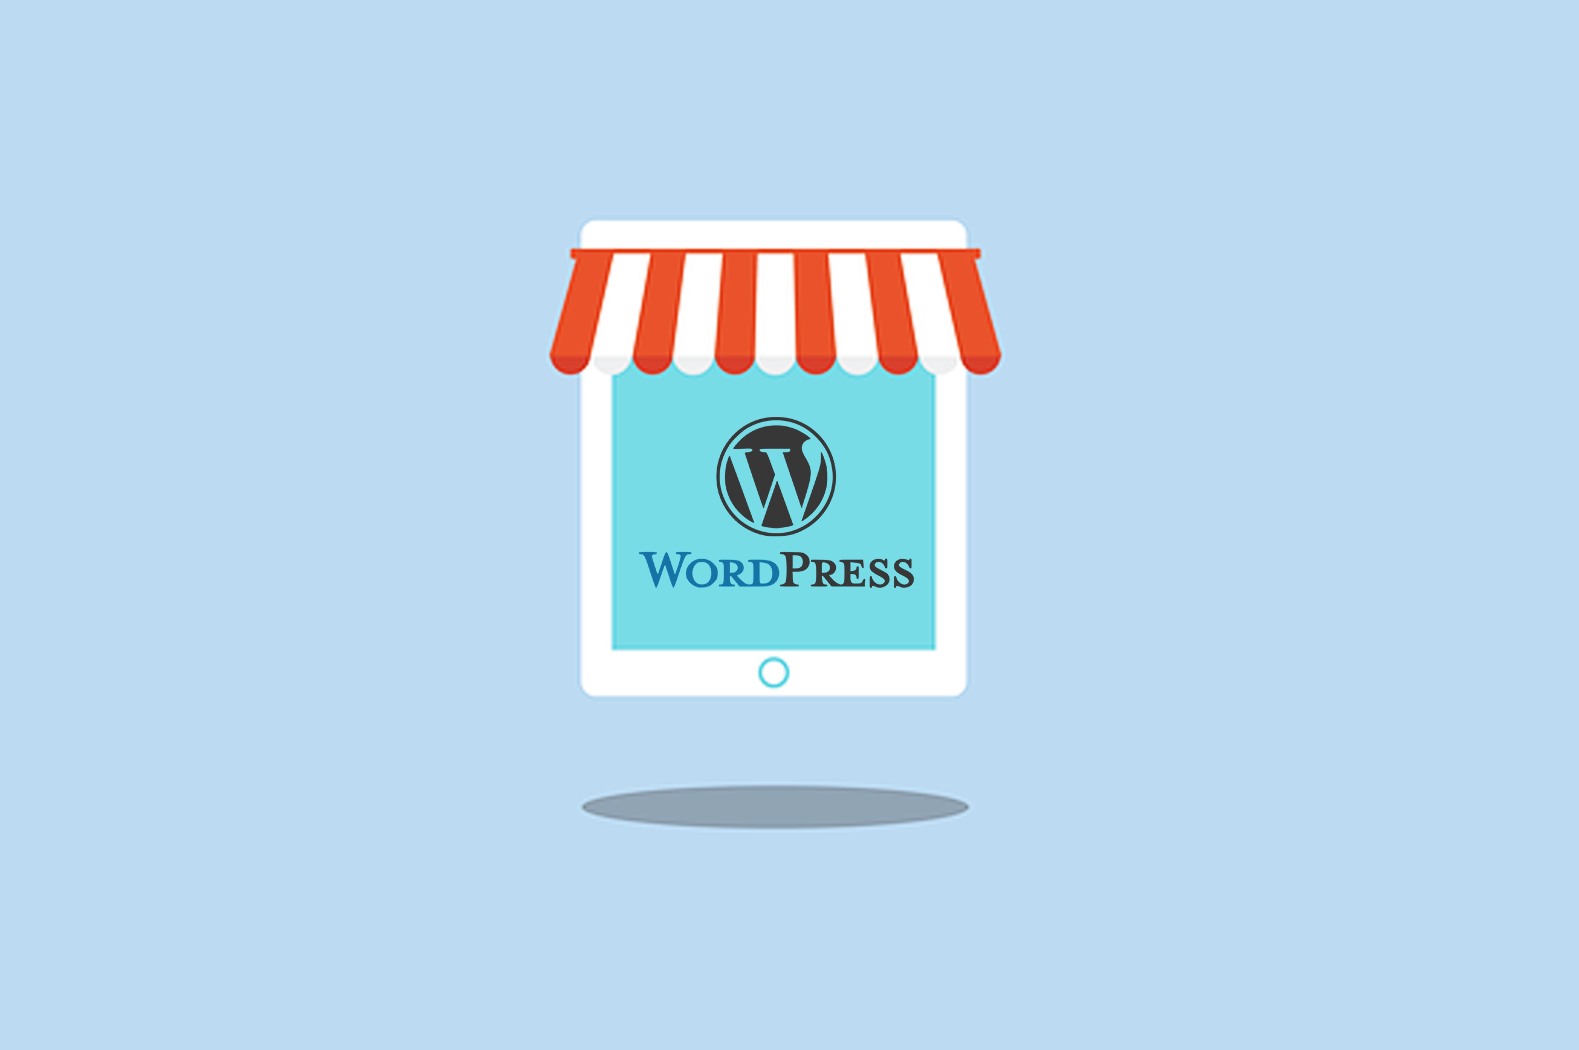 Why You Should Use Wordpress for Ecommerce